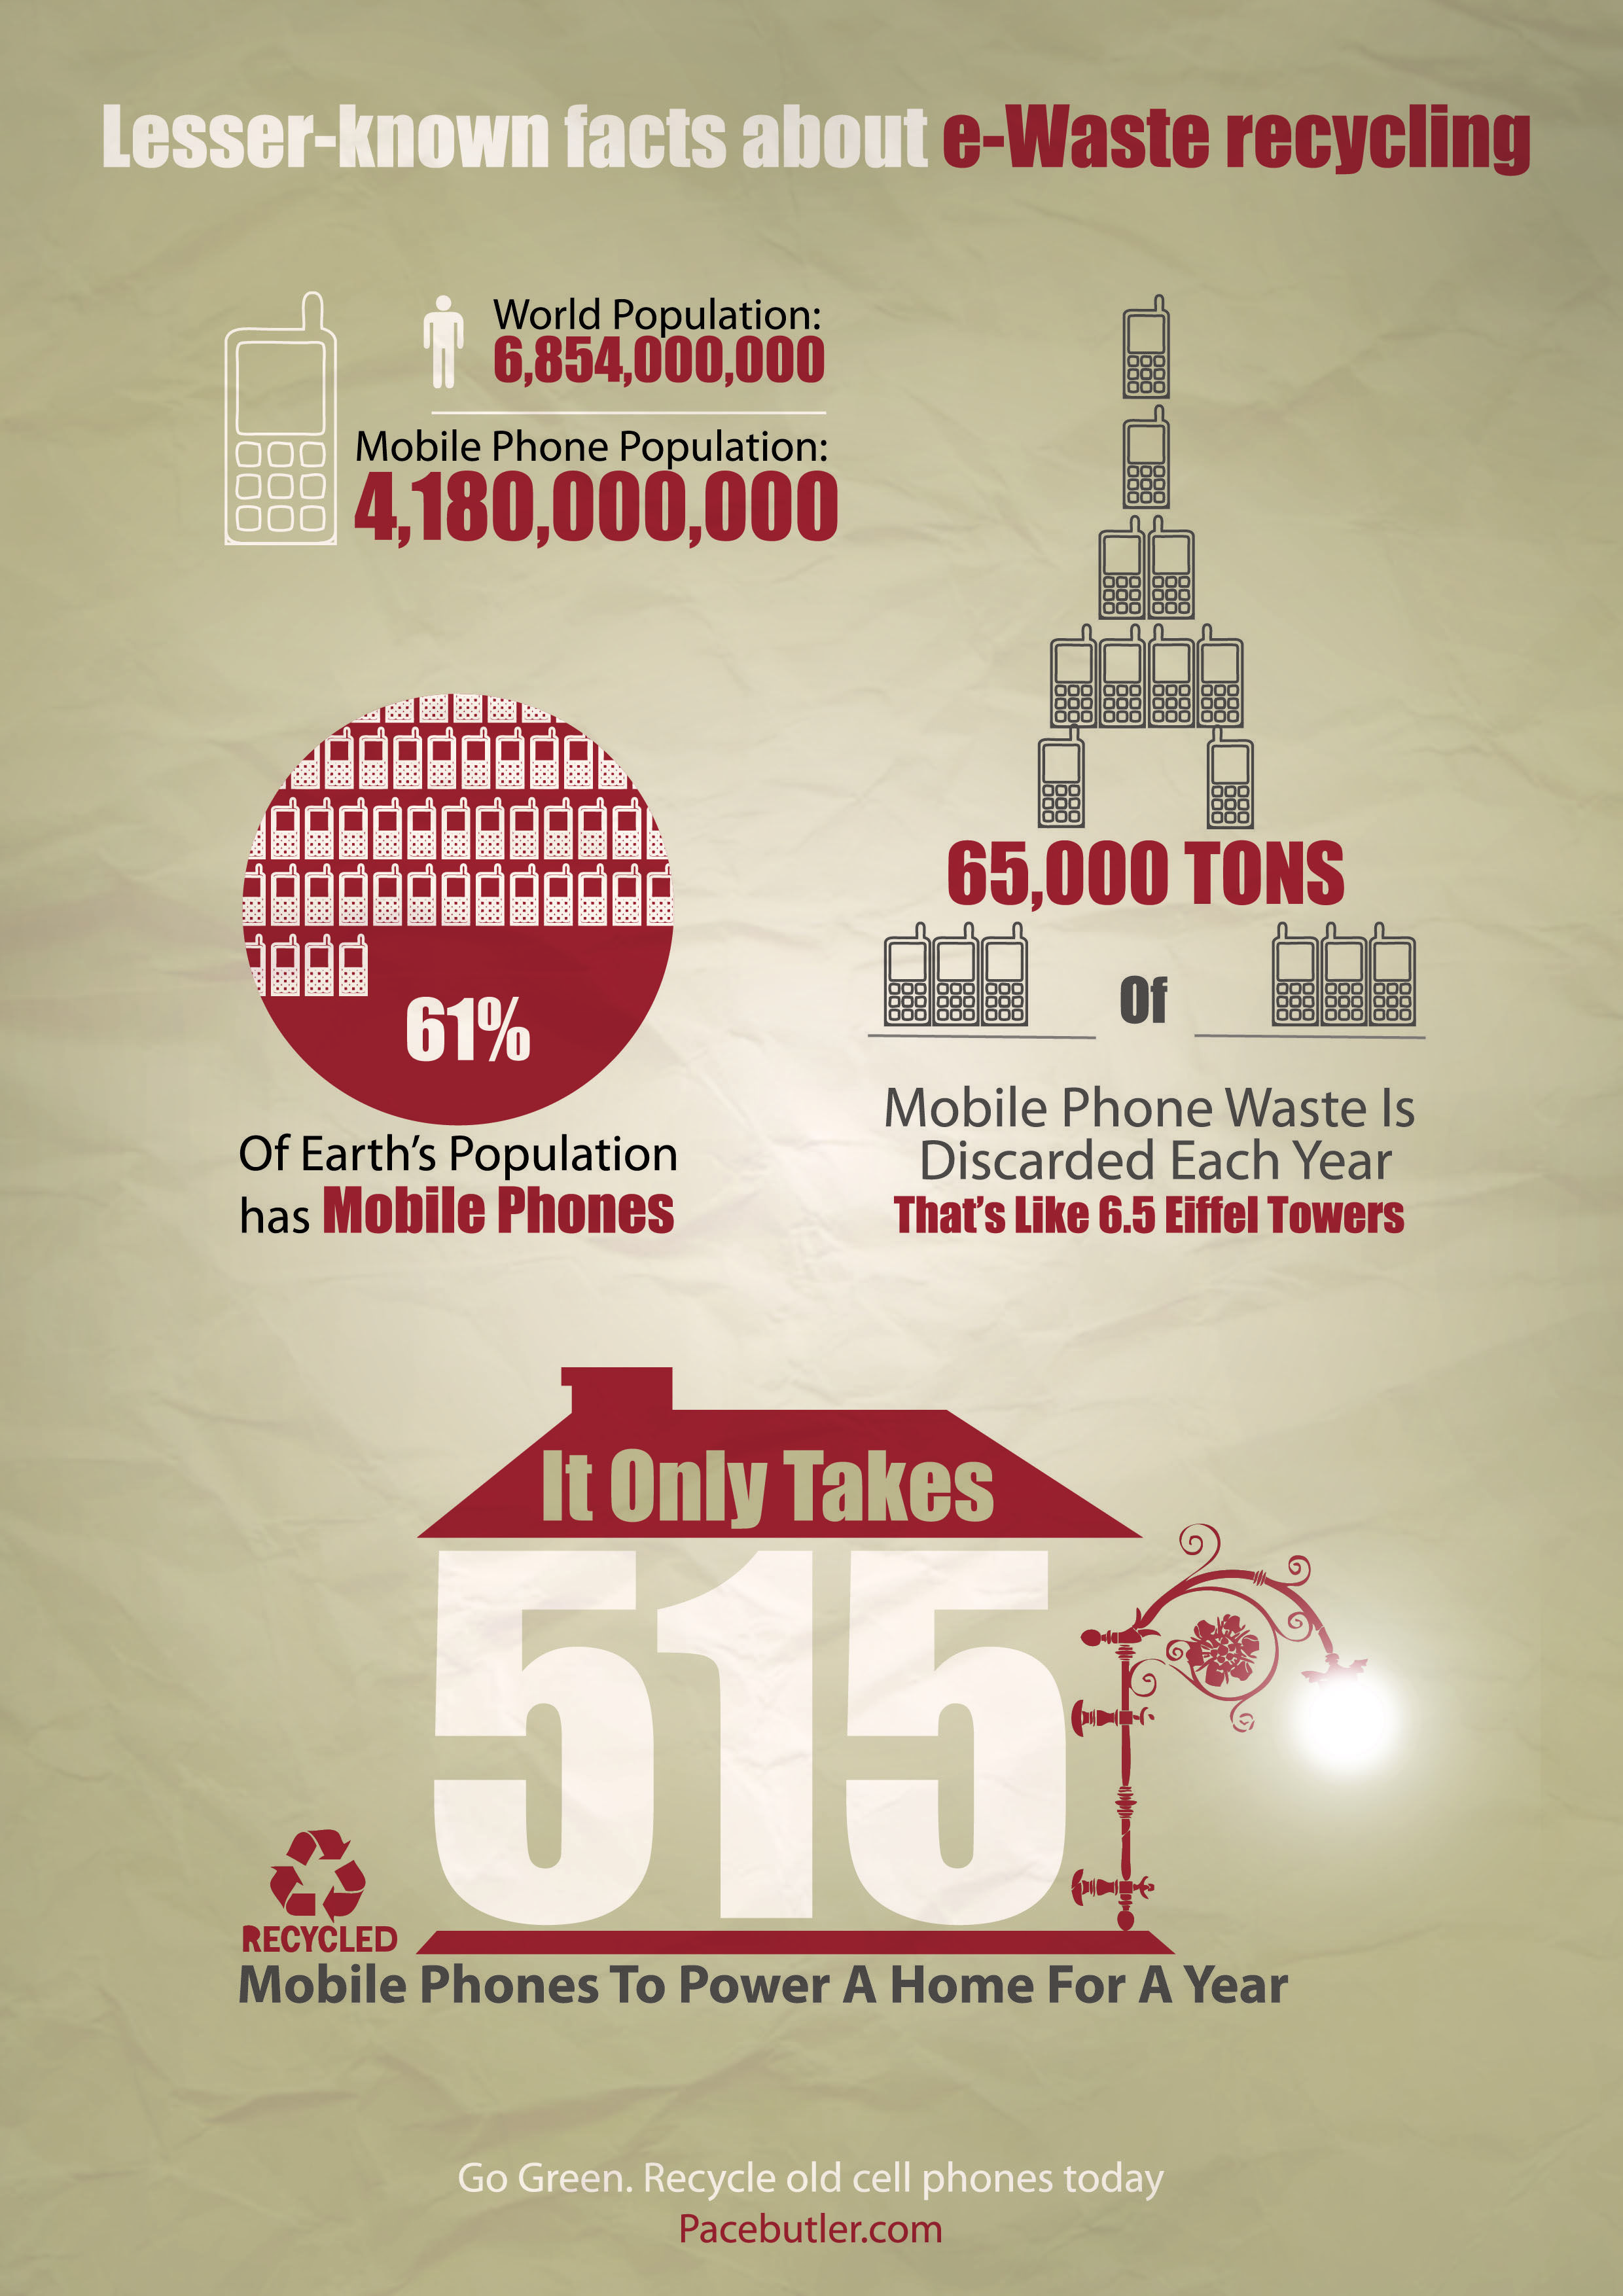 eWaste Recycling facts E waste recycling, Recycling